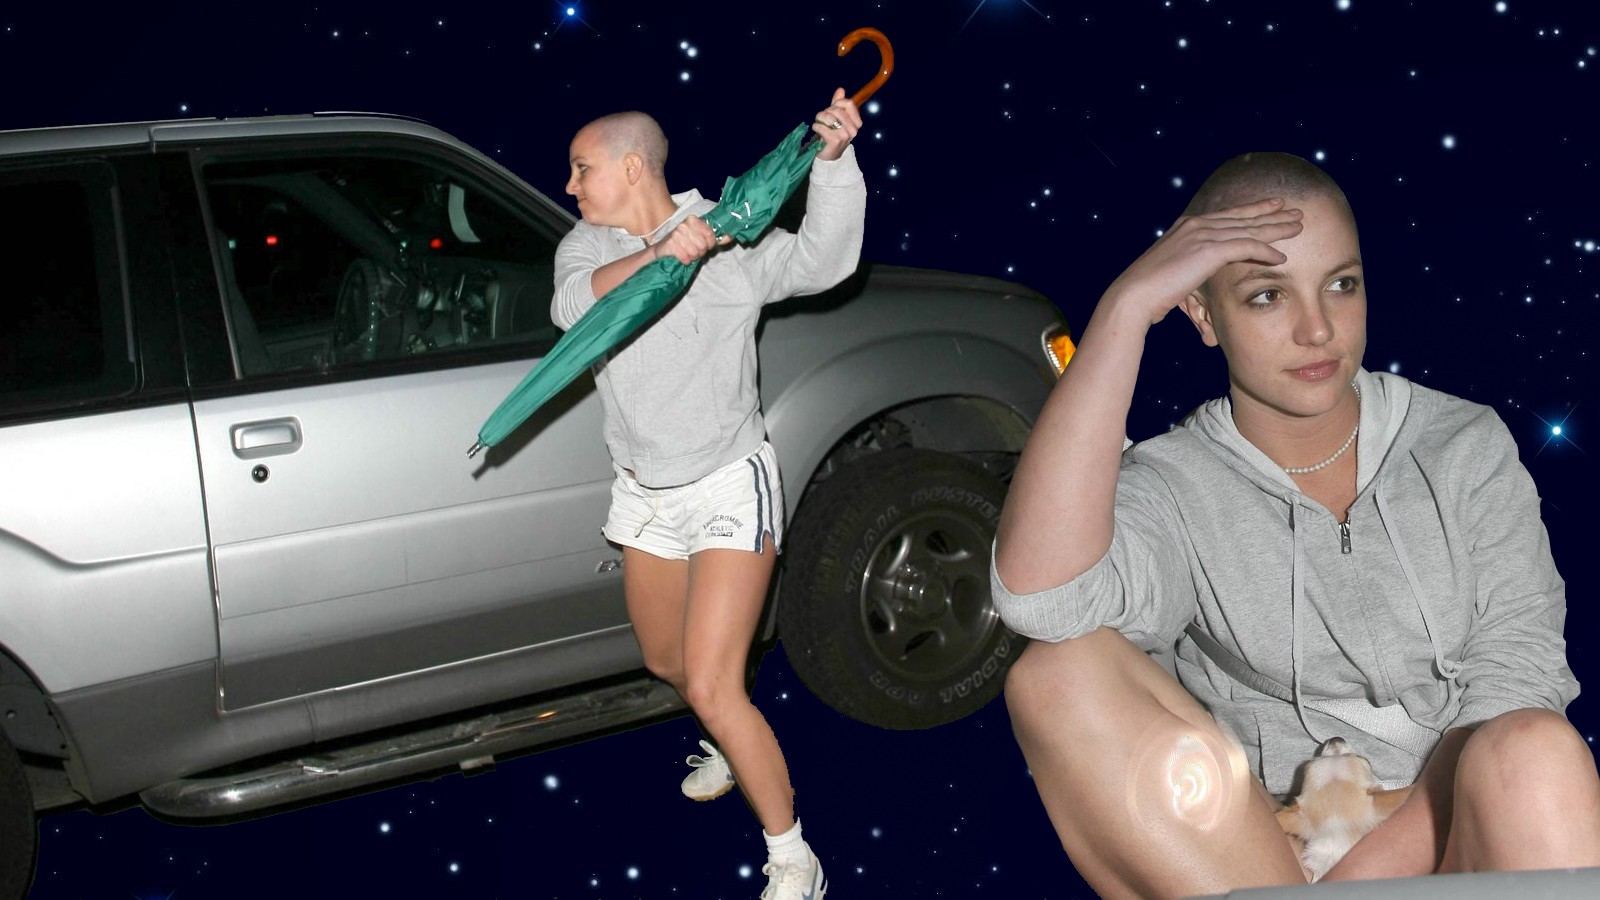 Paparazzo Auctioning Off Umbrella From Infamous Britney Spears Attack